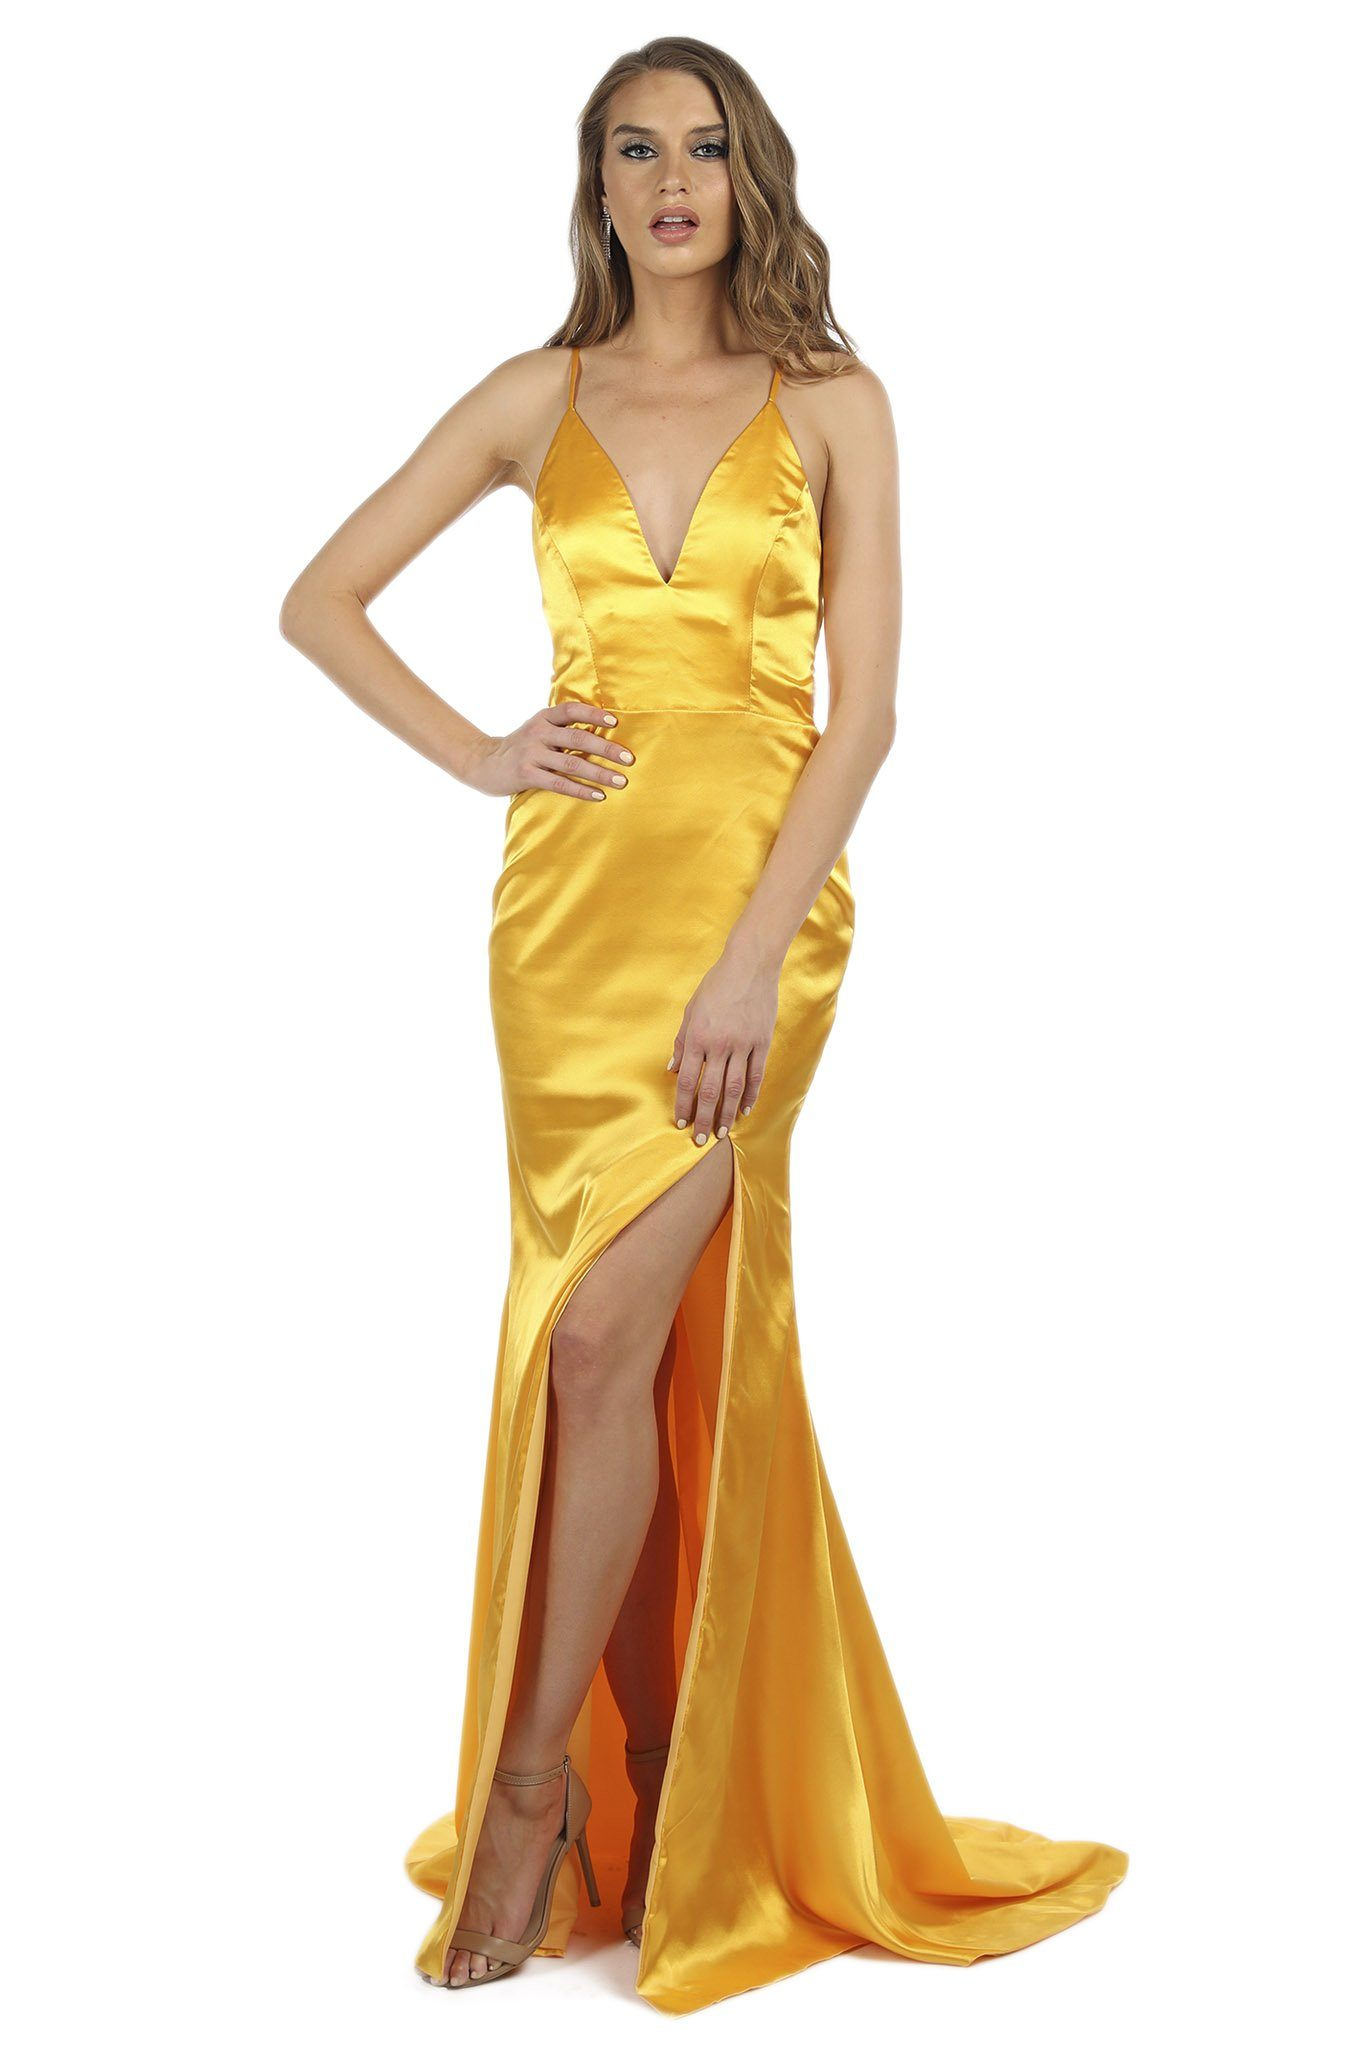 Bright Yellow satin formal long maxi dress deep V plunging neckline, high front left slit, lace-up straps on open back, floor sweep train